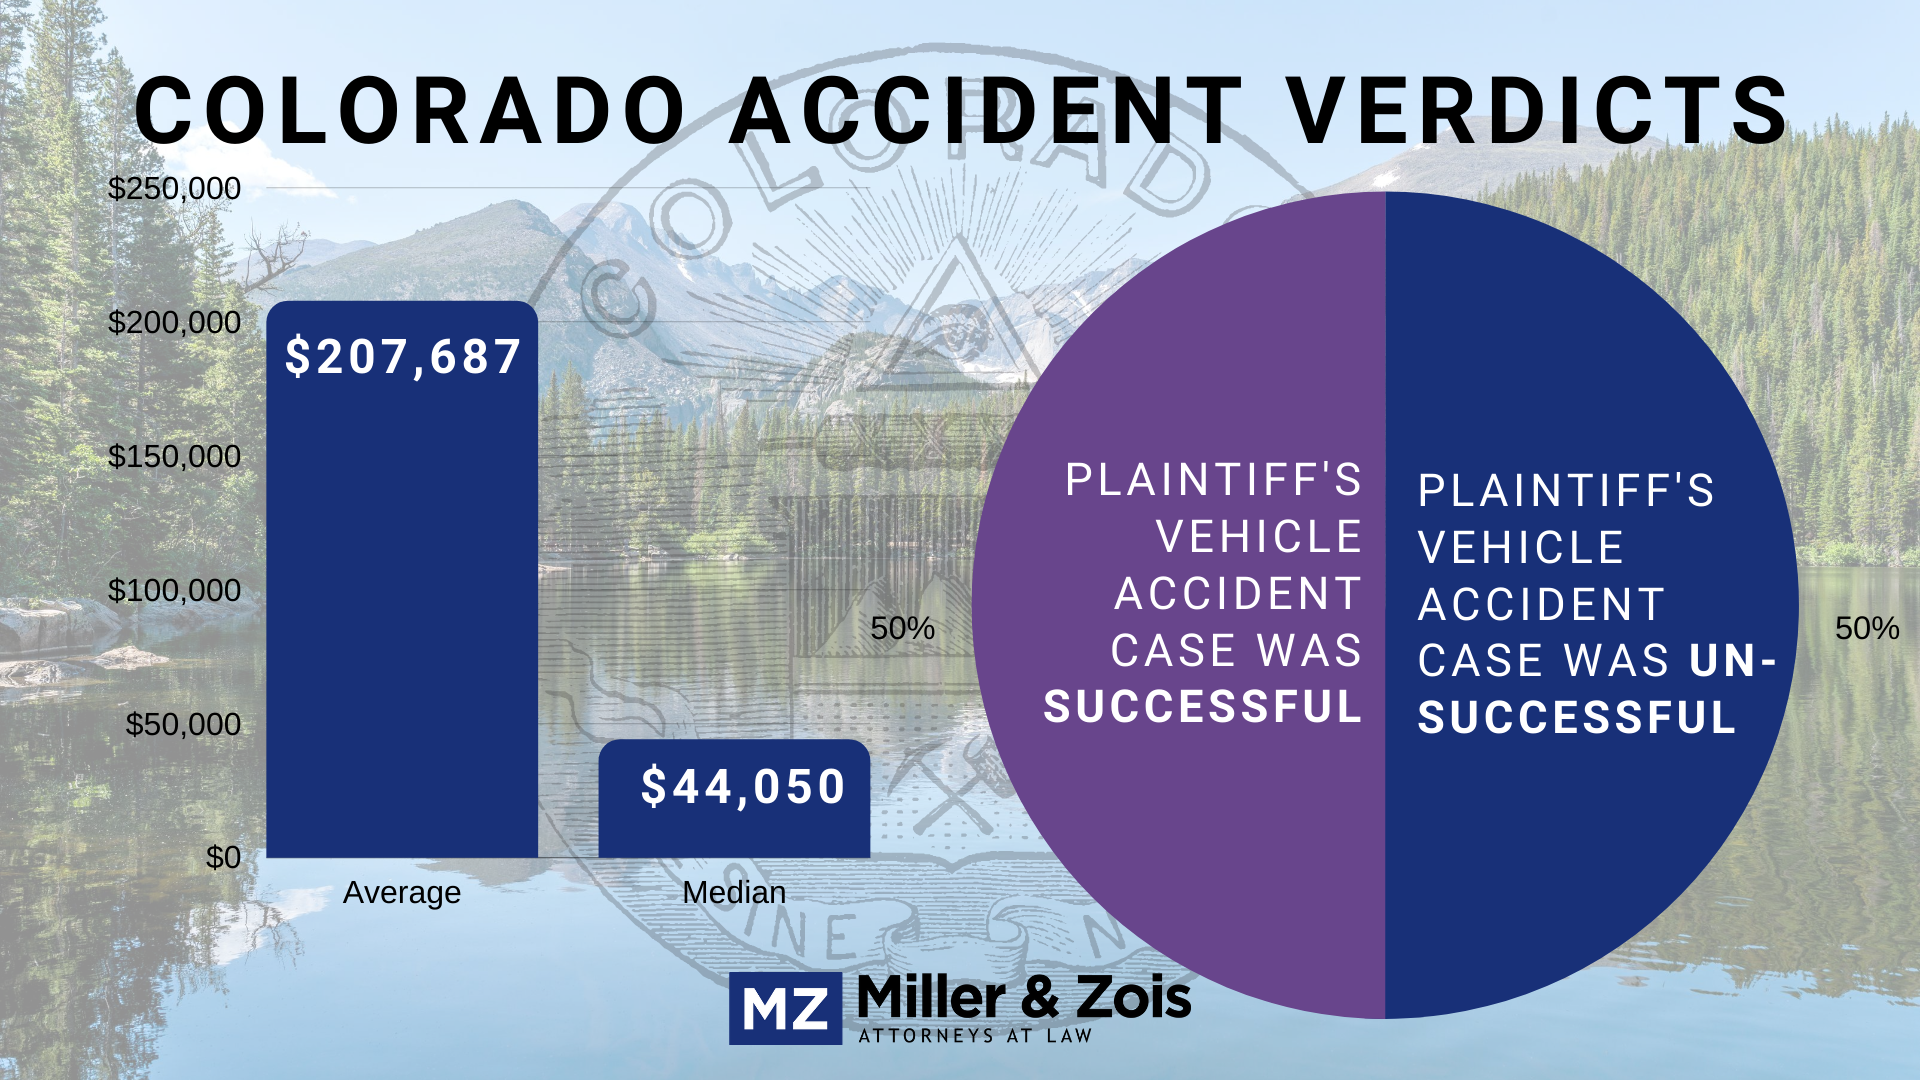 Colorado accident verdicts